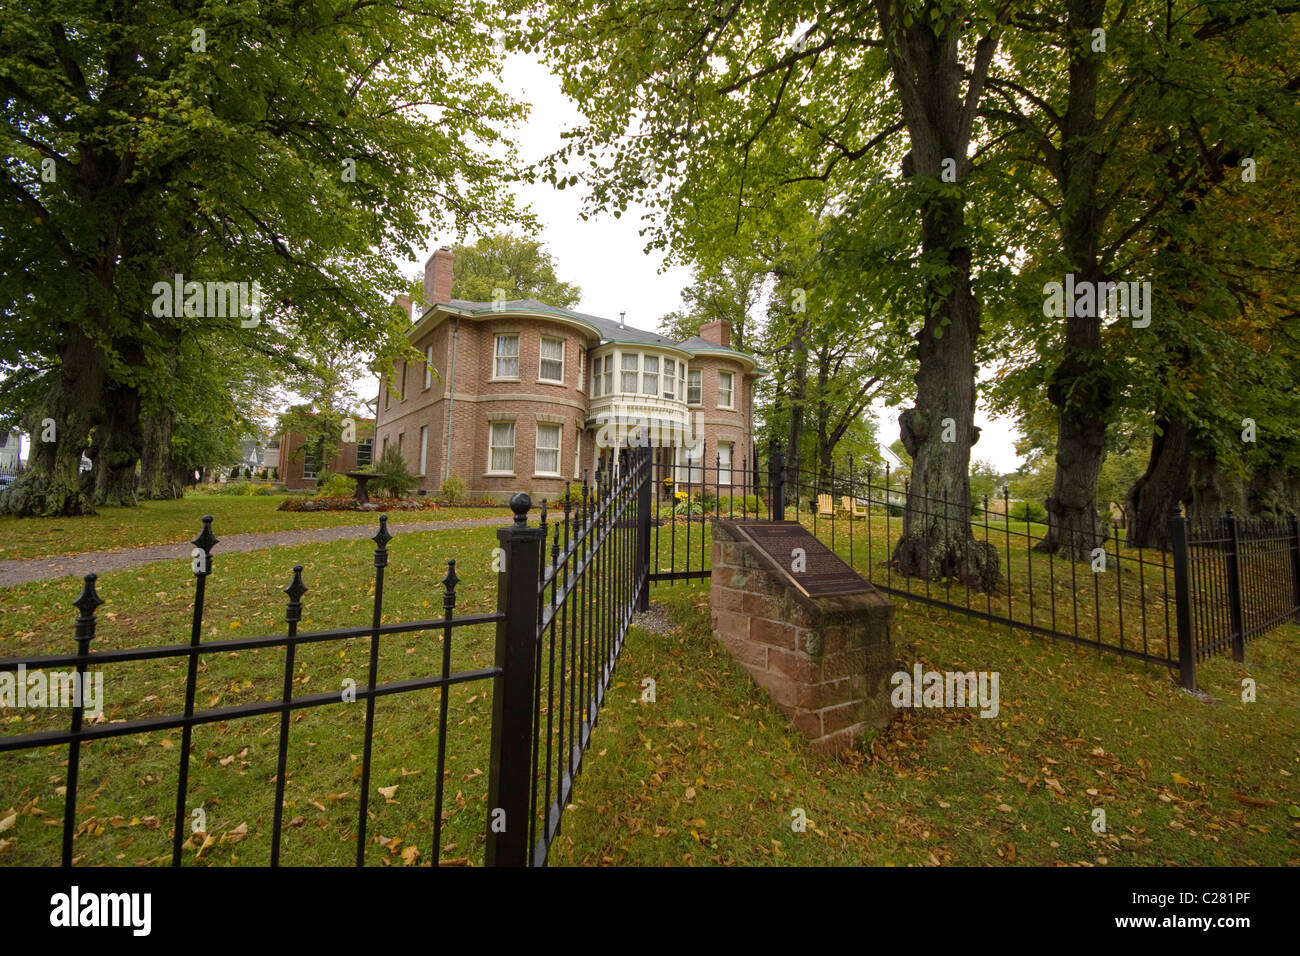 Fairholm estate, built in the 1830s is a national historic building, Charlottetown, Prince Edward Island, Canada - Stock Image